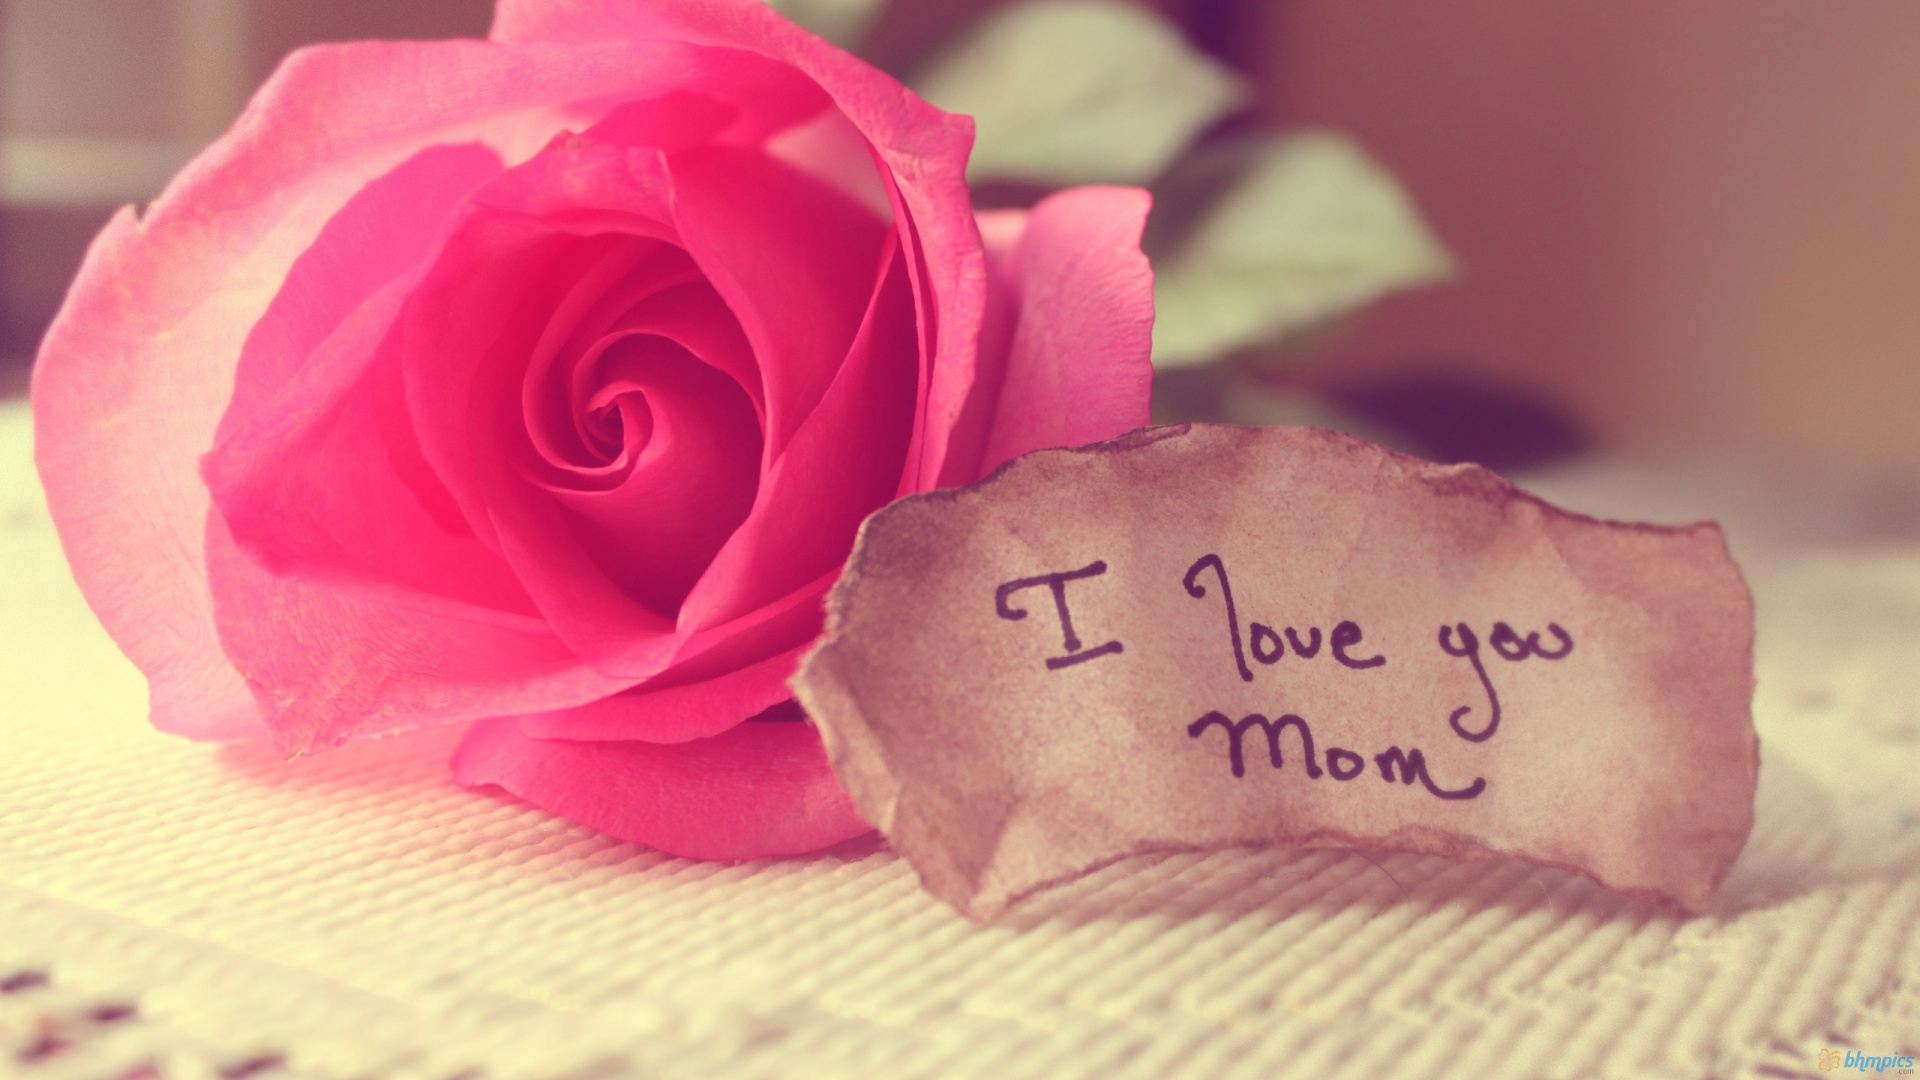 I Love Mom Wallpapers For Mobile